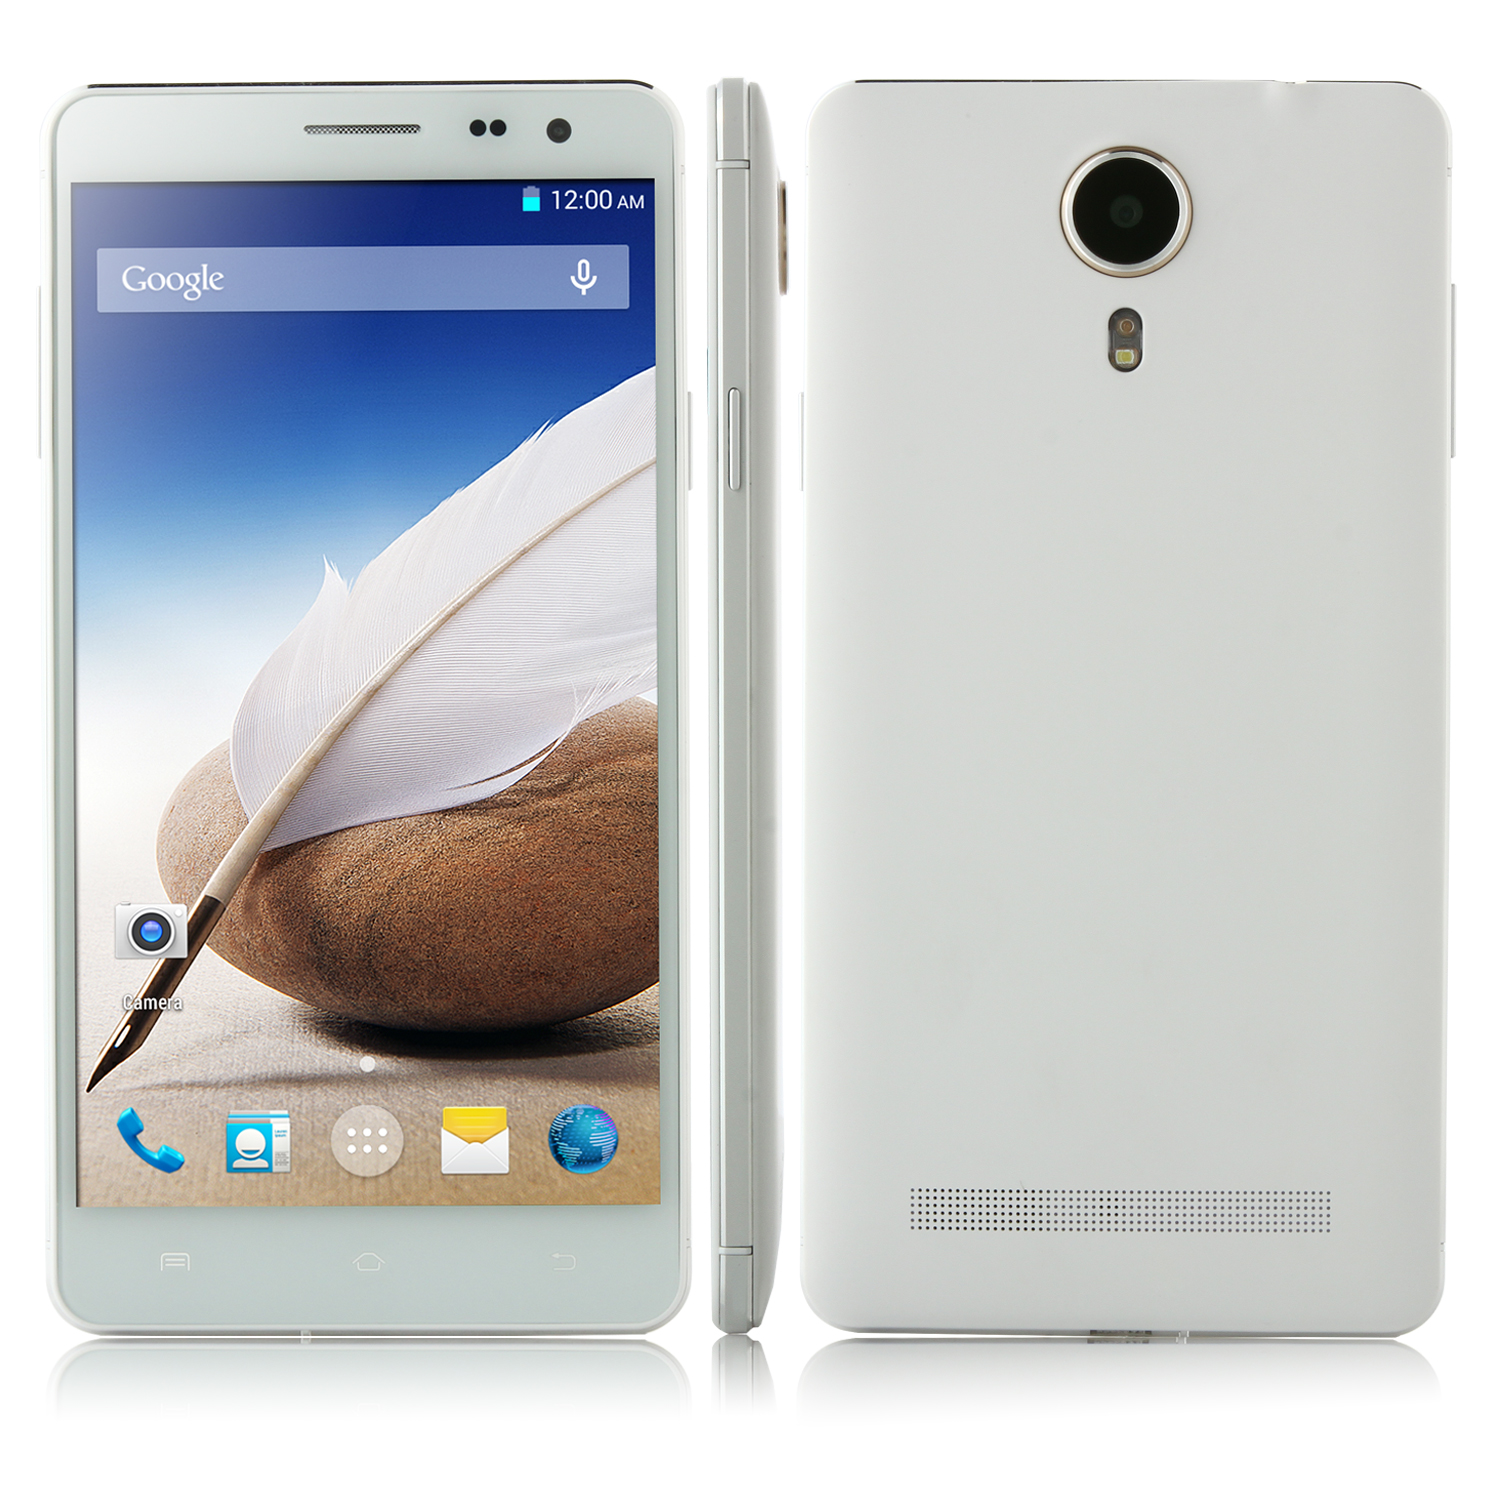 Kingelon V3 Smartphone Android 4.4 MTK6582 Quad Core 5.5 Inch HD Screen 1GB 8GB White